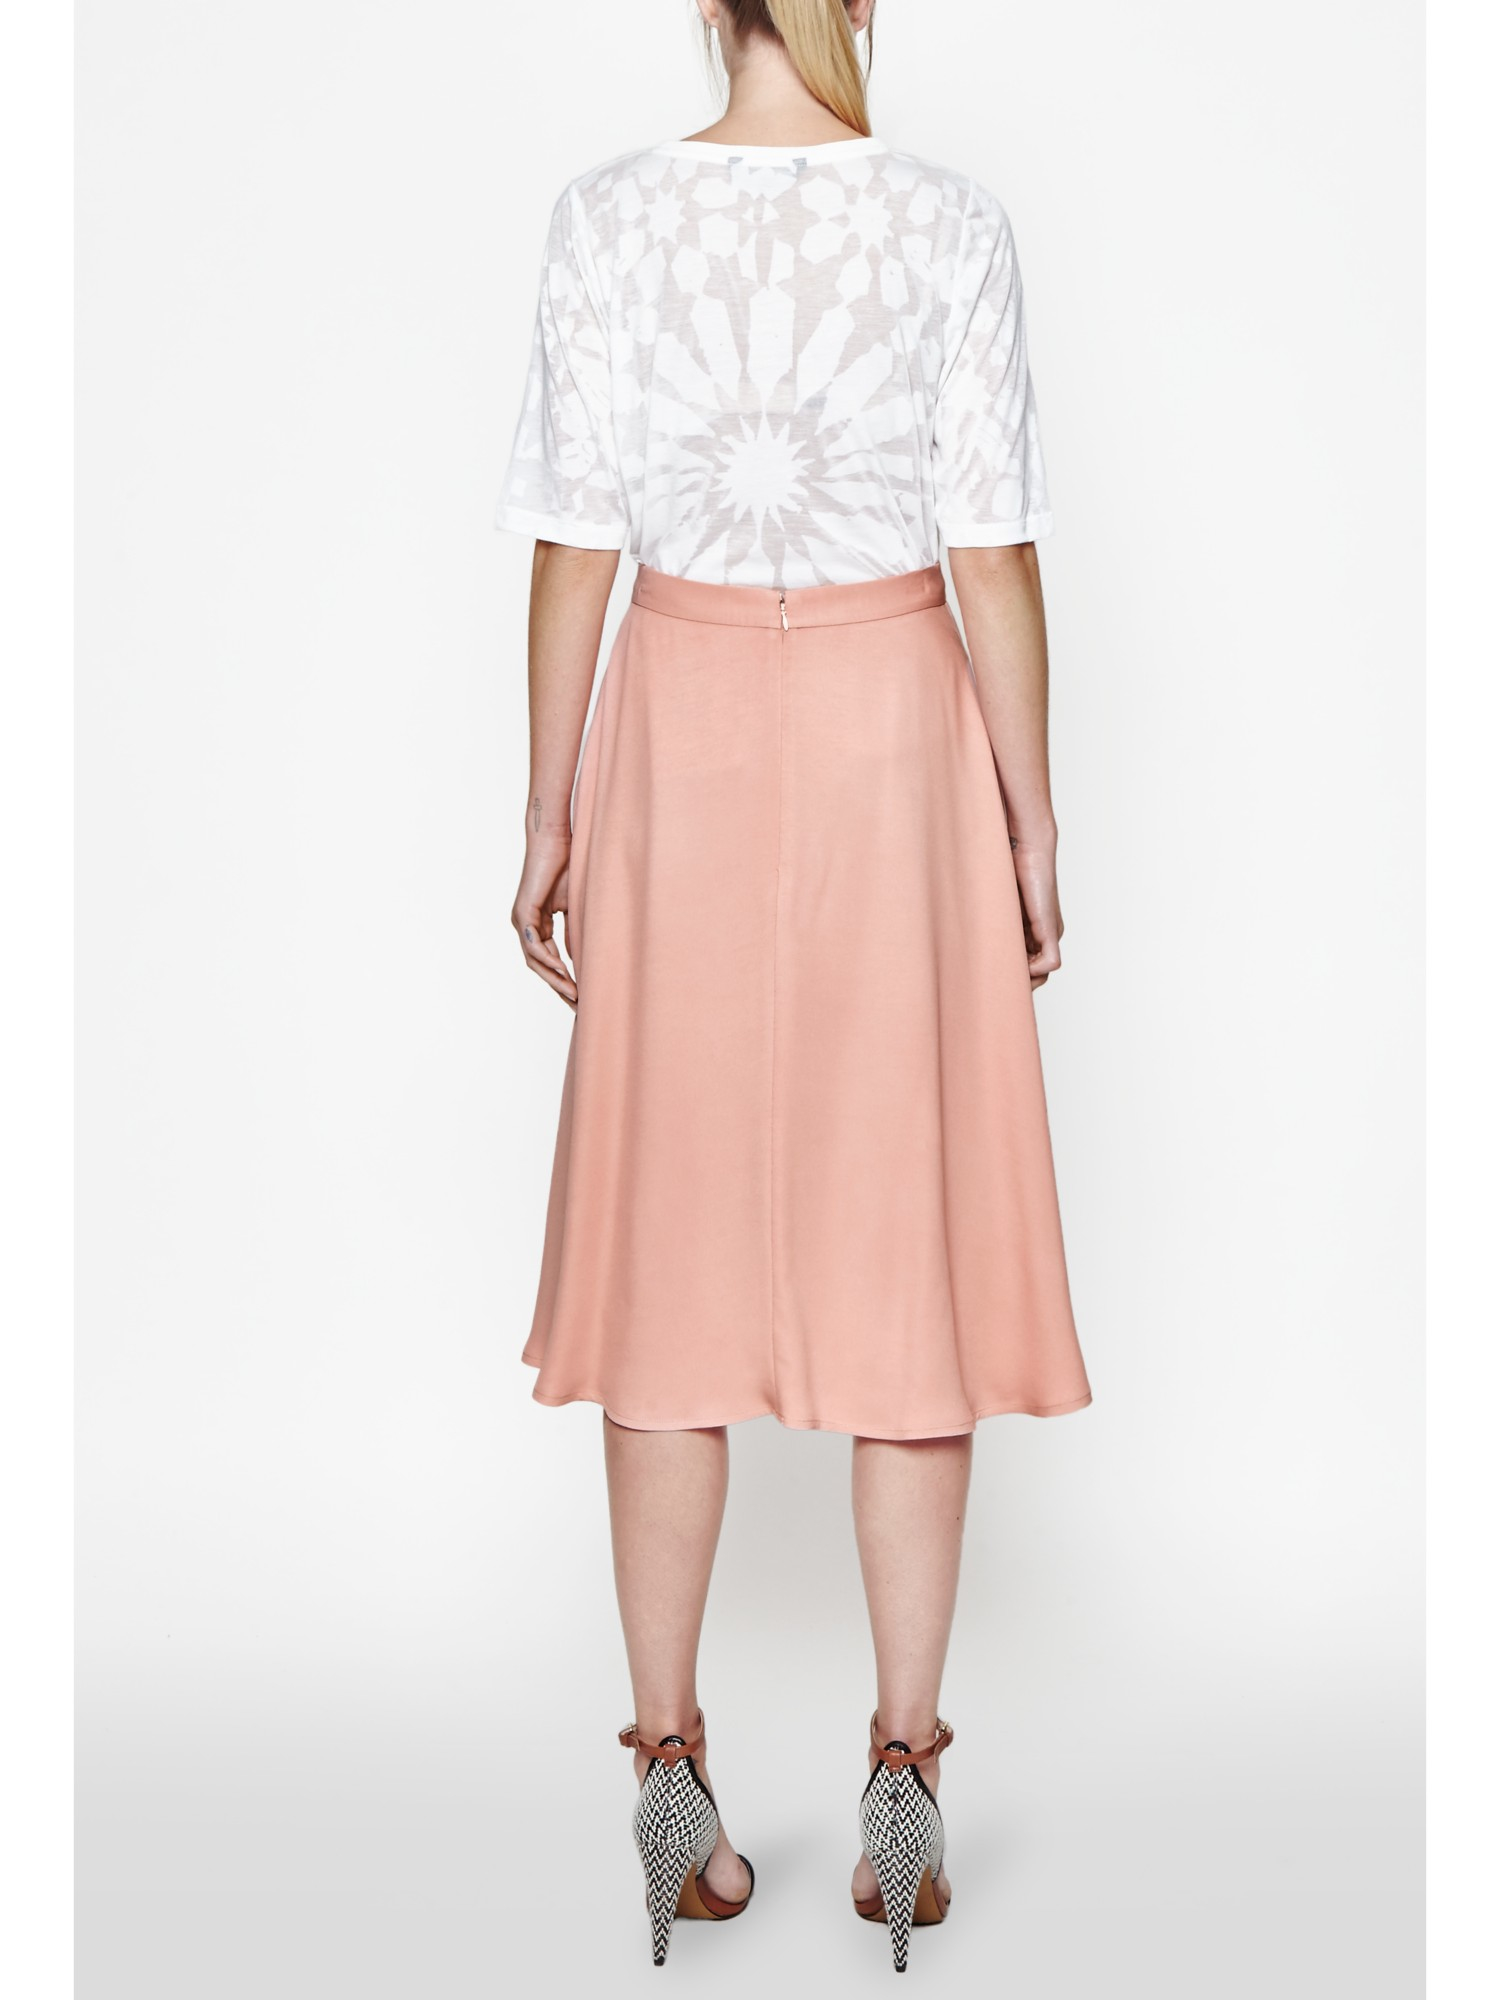 Shop Kasper Crepe Pencil Midi Skirt online at thrushop-9b4y6tny.ga Dress for the big meeting in Kasper's sleek midi skirt featuring a classic pencil fit and midi-length style. Macy's Presents: The Edit- A curated mix of fashion and inspiration Check It Out/5(44).